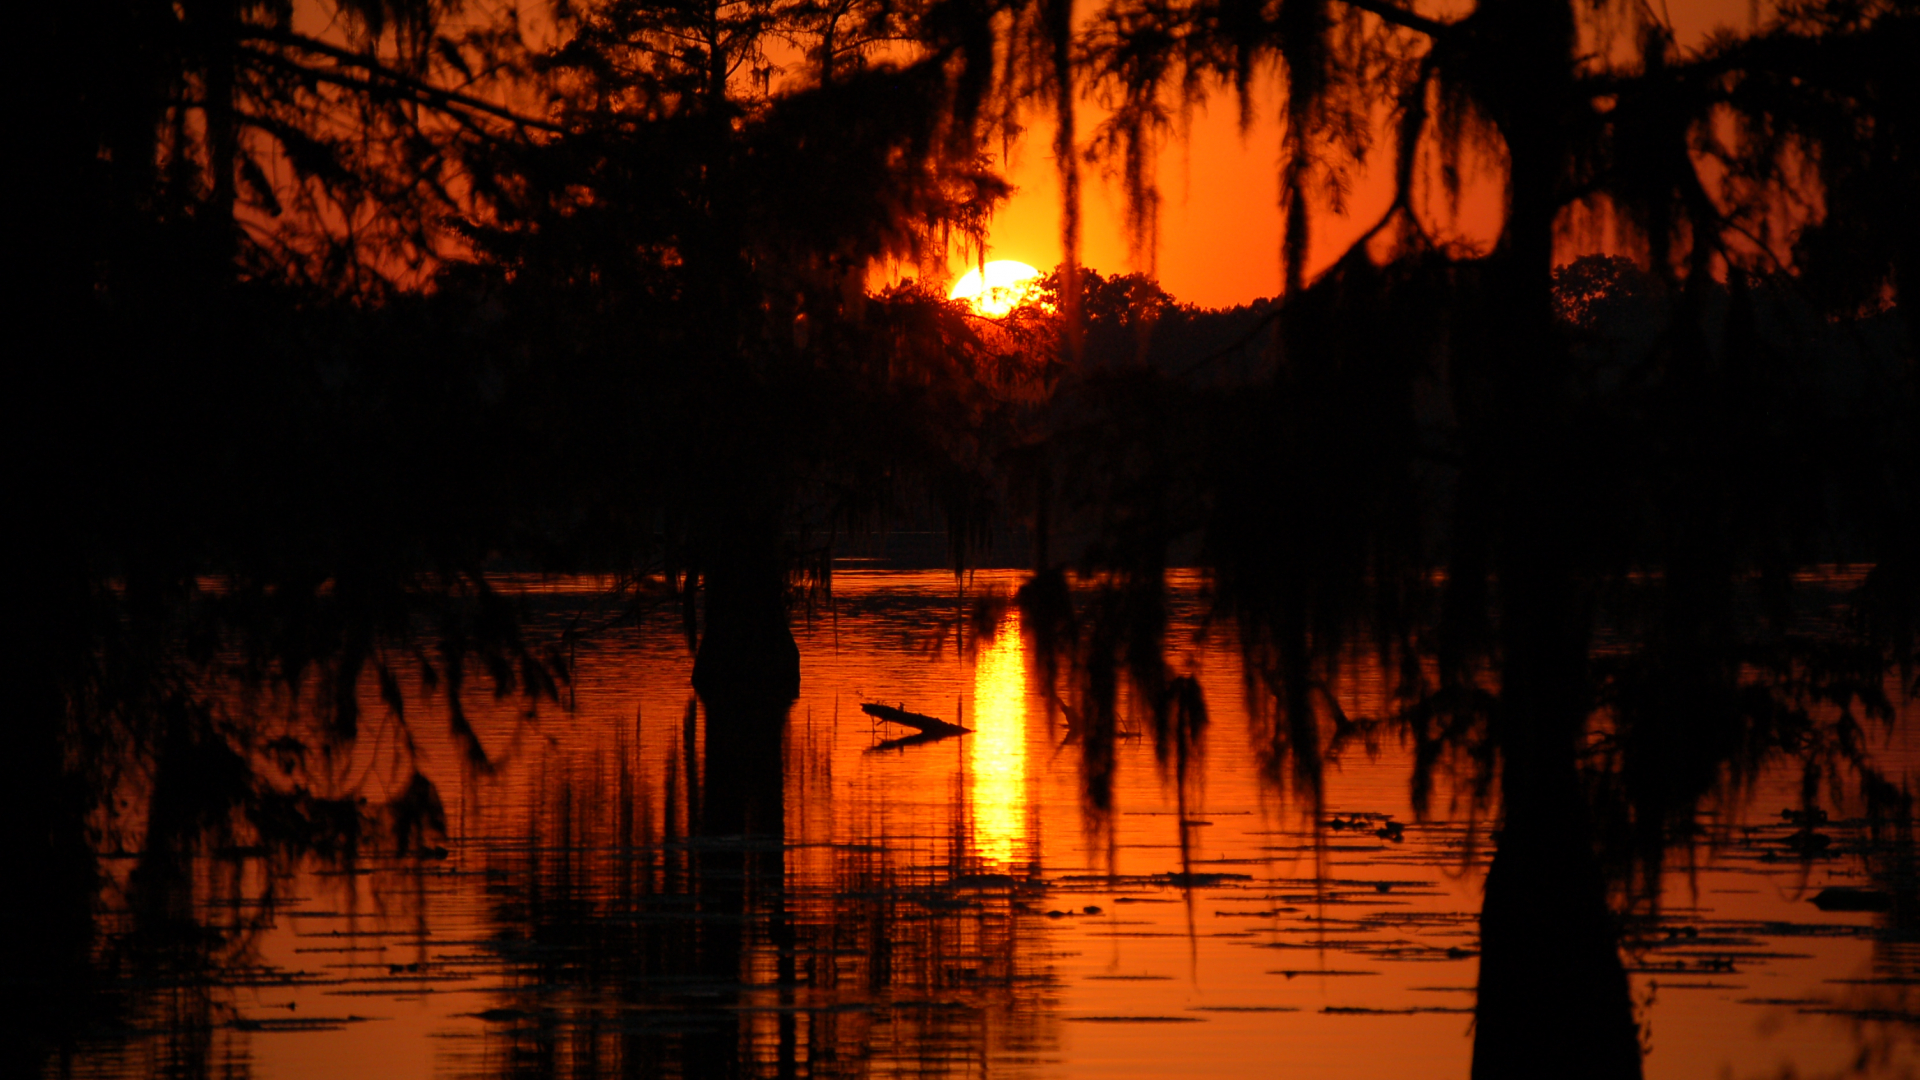 Free Download Description Swamp Sunset In Cajun Countryjpg 3008x2000 For Your Desktop Mobile Tablet Explore 47 Louisiana Swamp Scene Wallpaper Louisiana Swamp Scene Wallpaper Louisiana Swamp Wallpaper Swamp Wallpaper